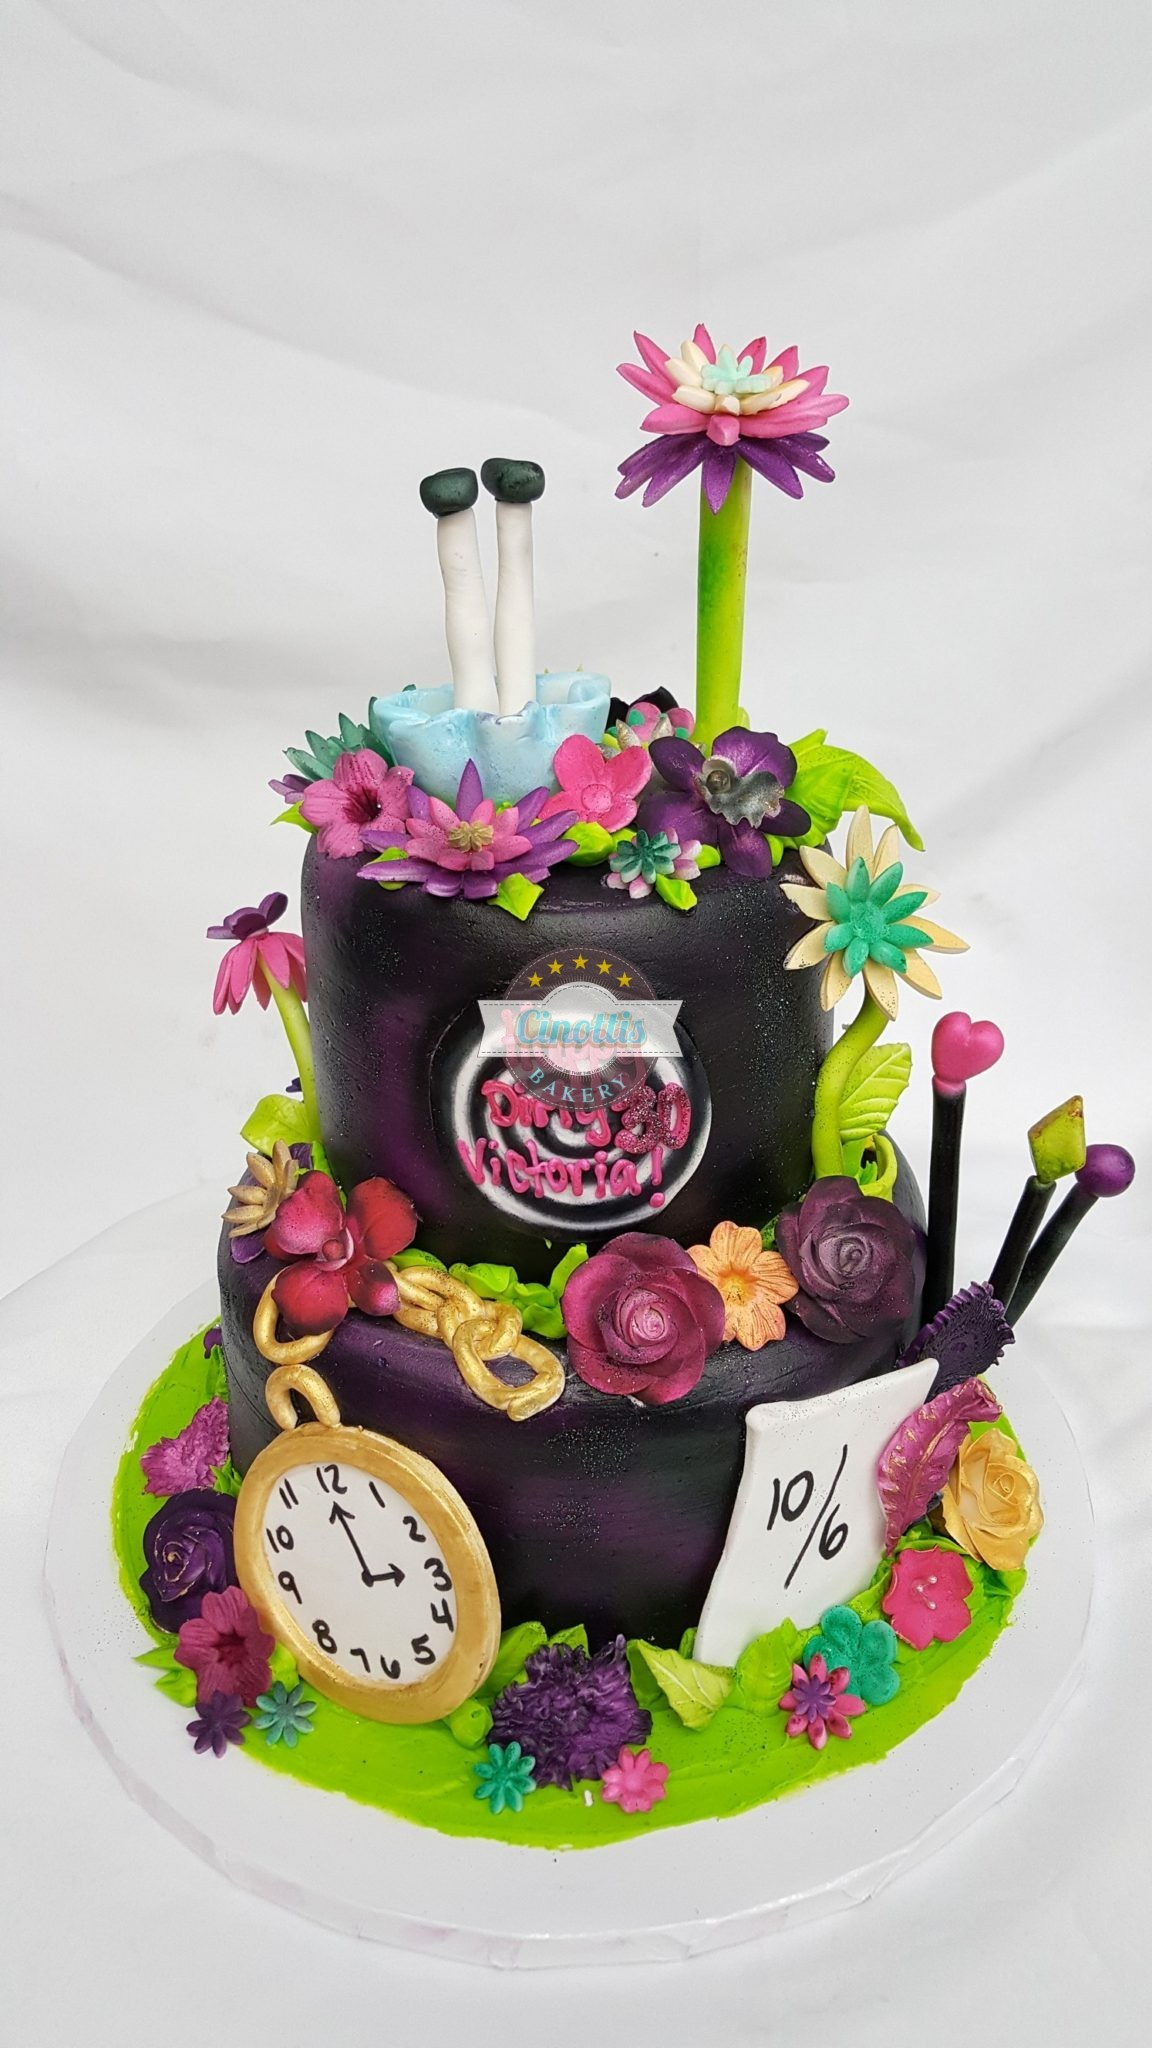 Alice, Wonderland, Looking, Glass, Mad, Hatter, Cheshire, Fondant, Buttercream, Birthday, Party, Shower, Cinotti, Bakery